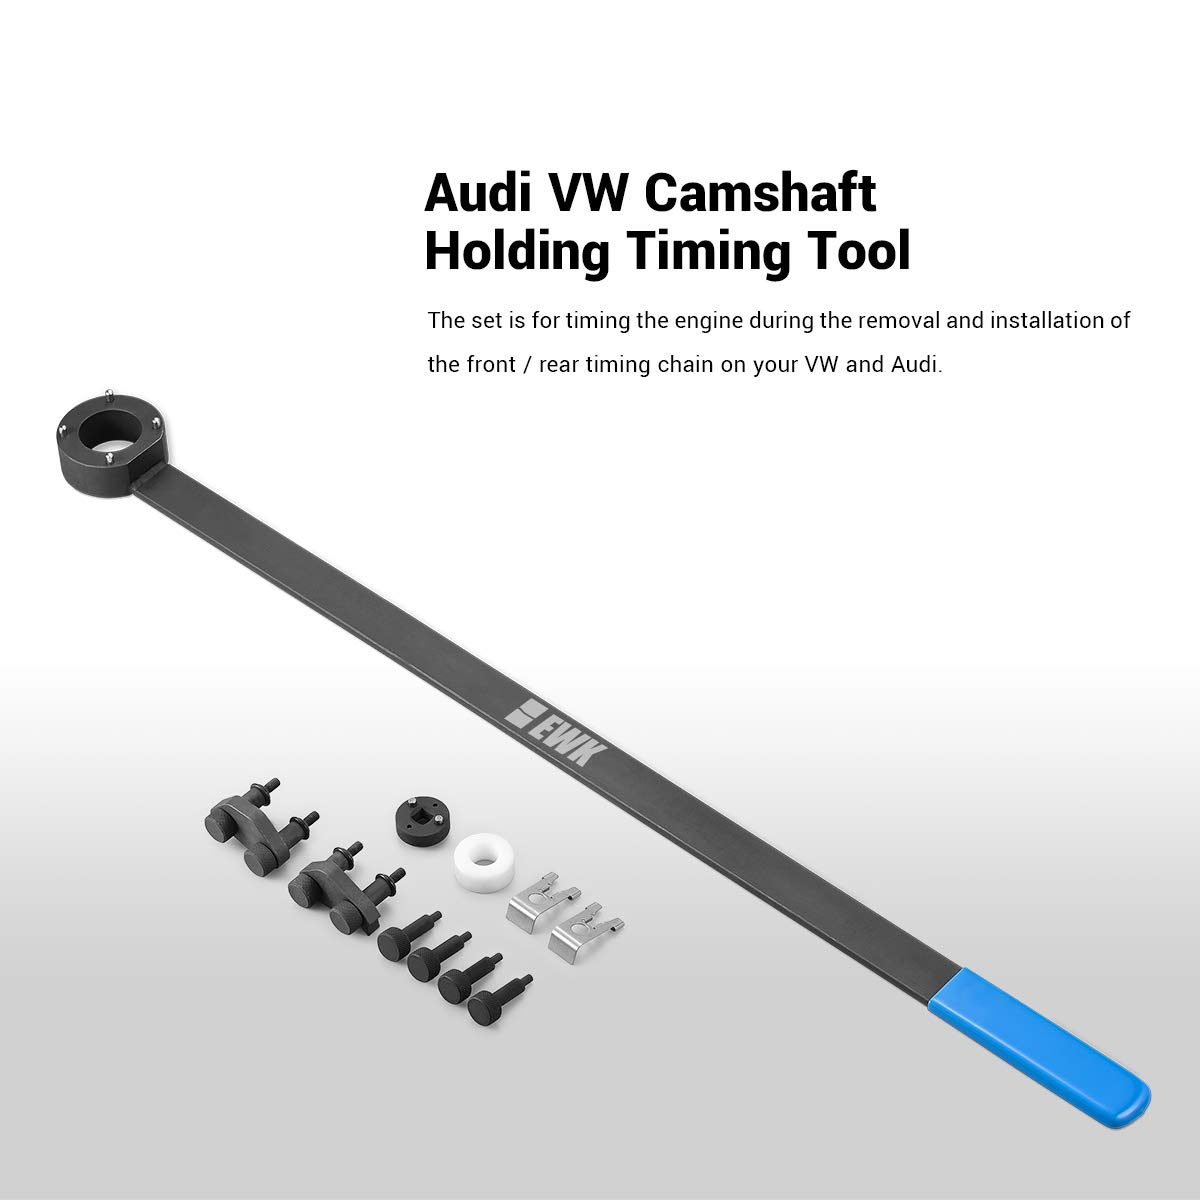 EWK VAG T10355 T10352 CAEB Timing Tool Camshaft Holder for VW 2.0 Audi A3 A4 A5 A6